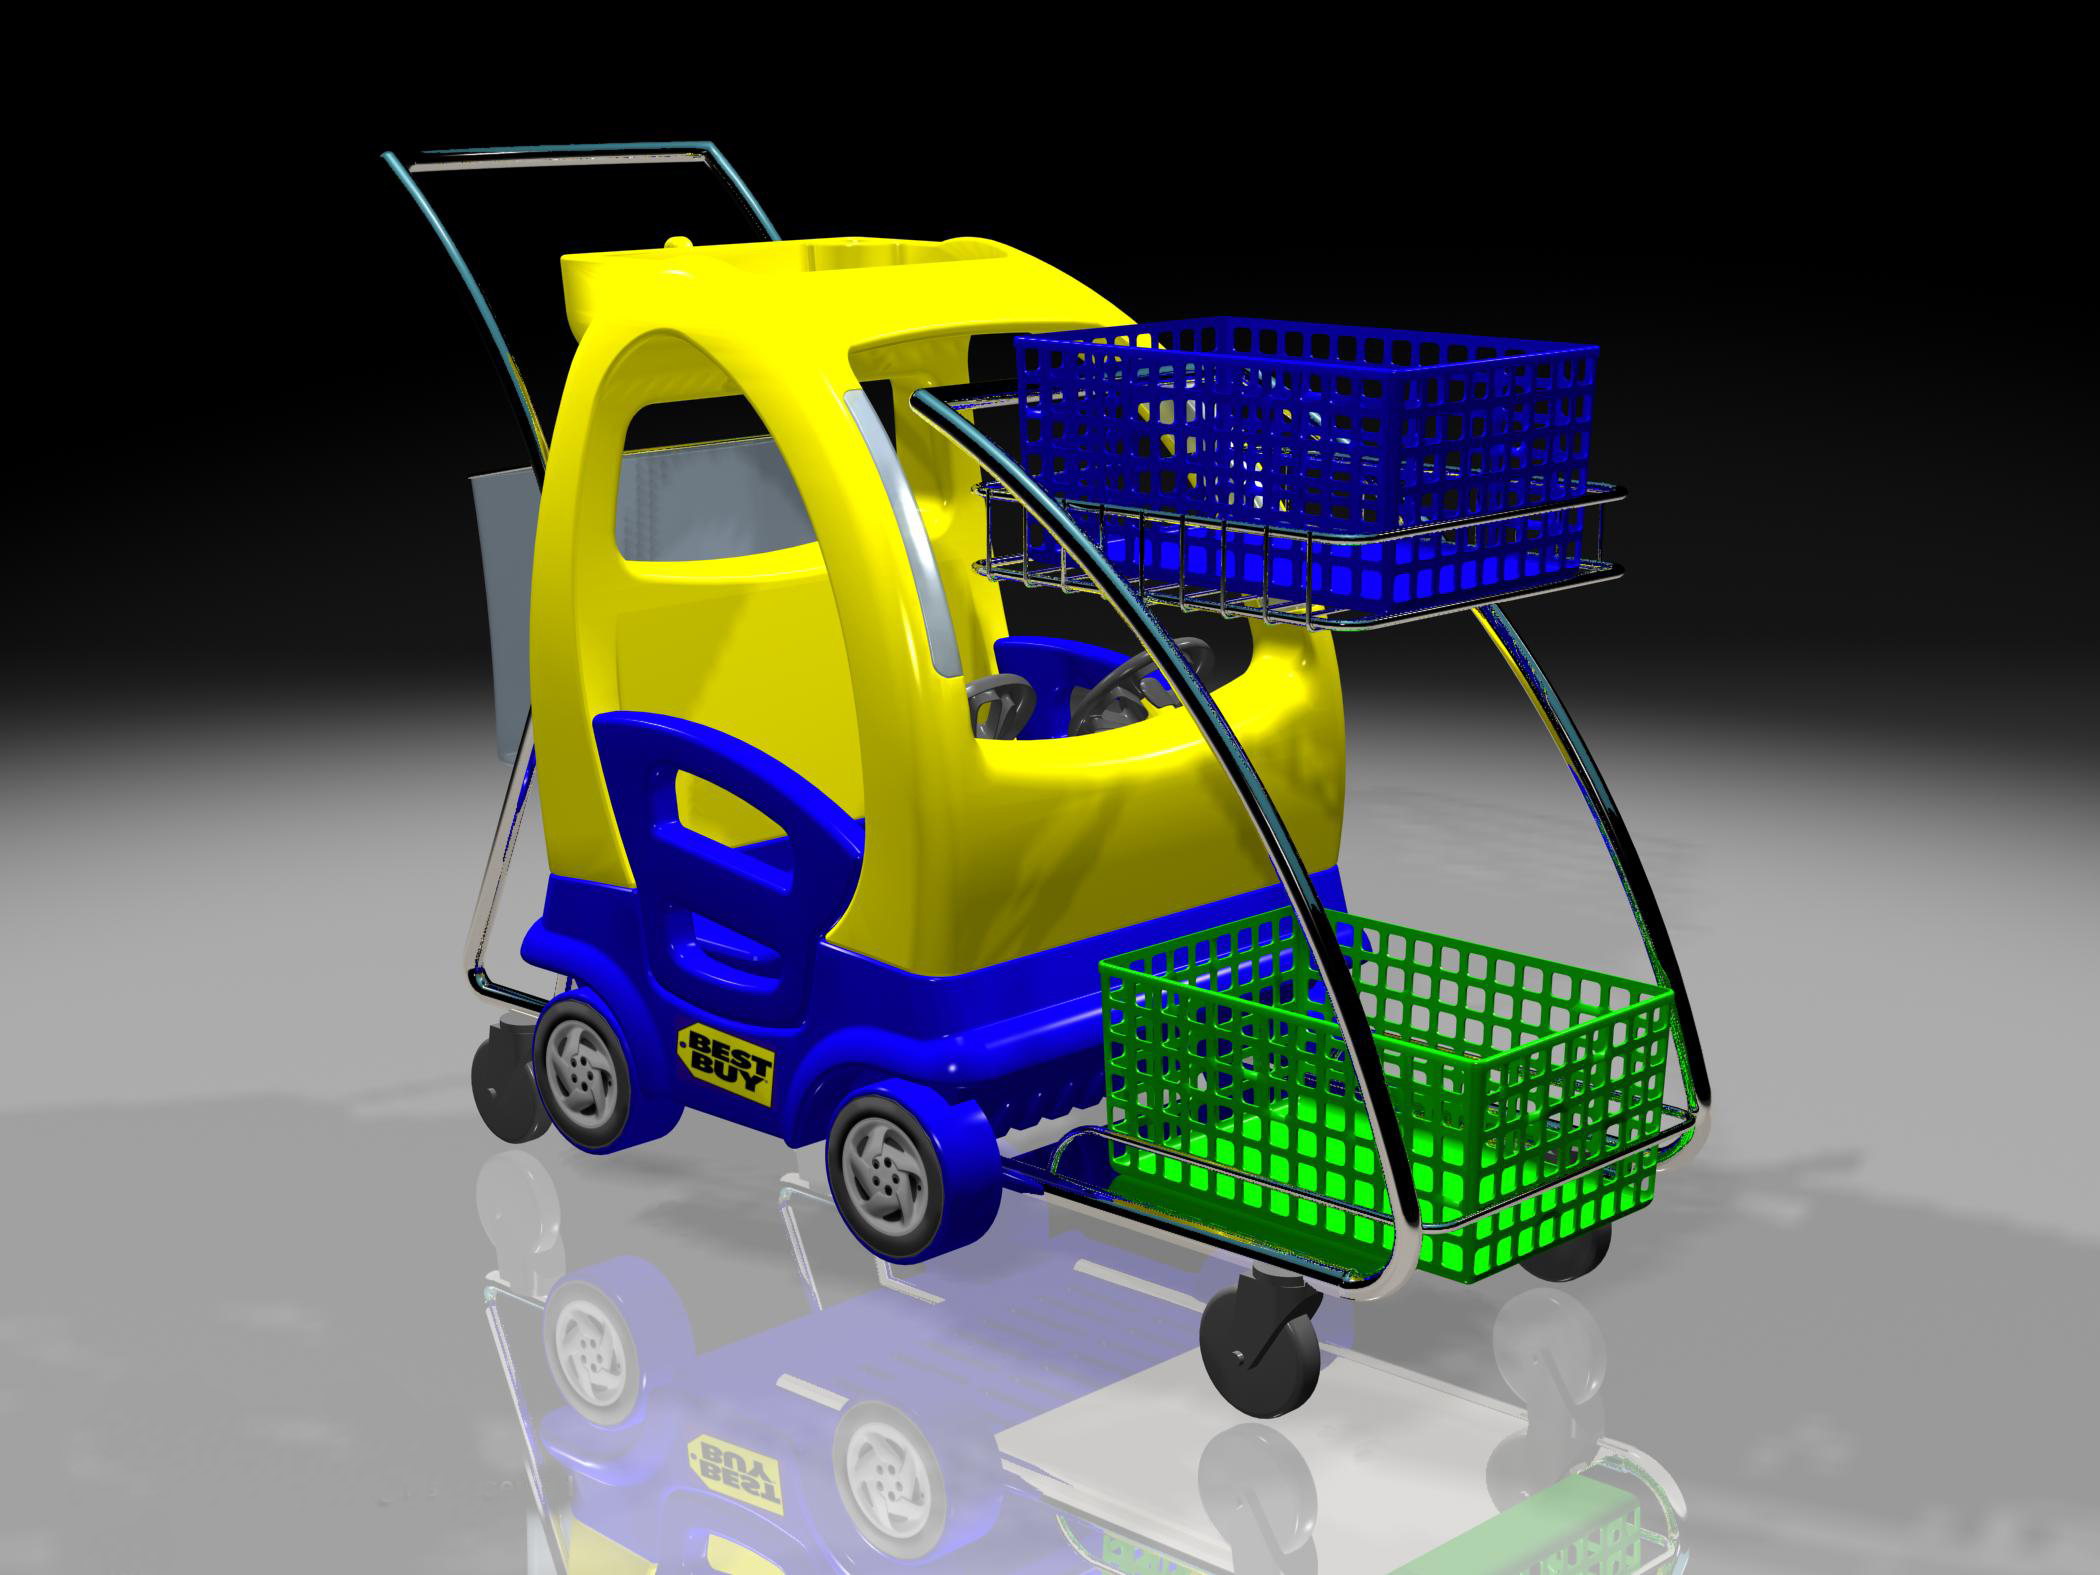 New shopping cart design